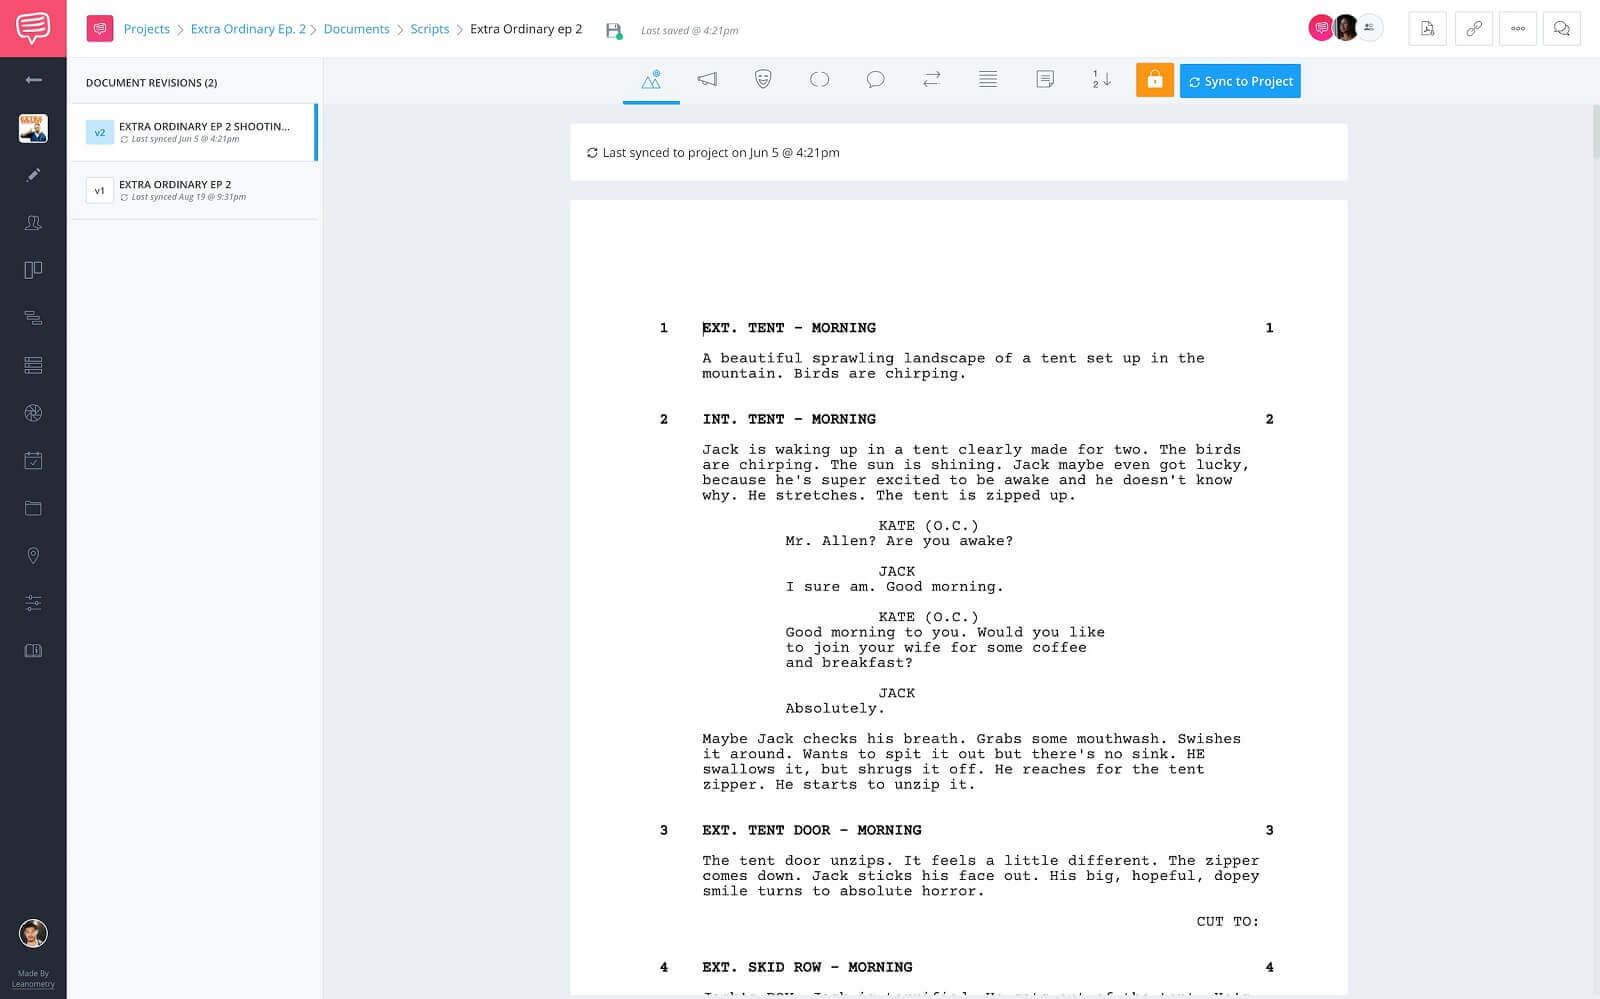 Documents Page - Screenwriting Page